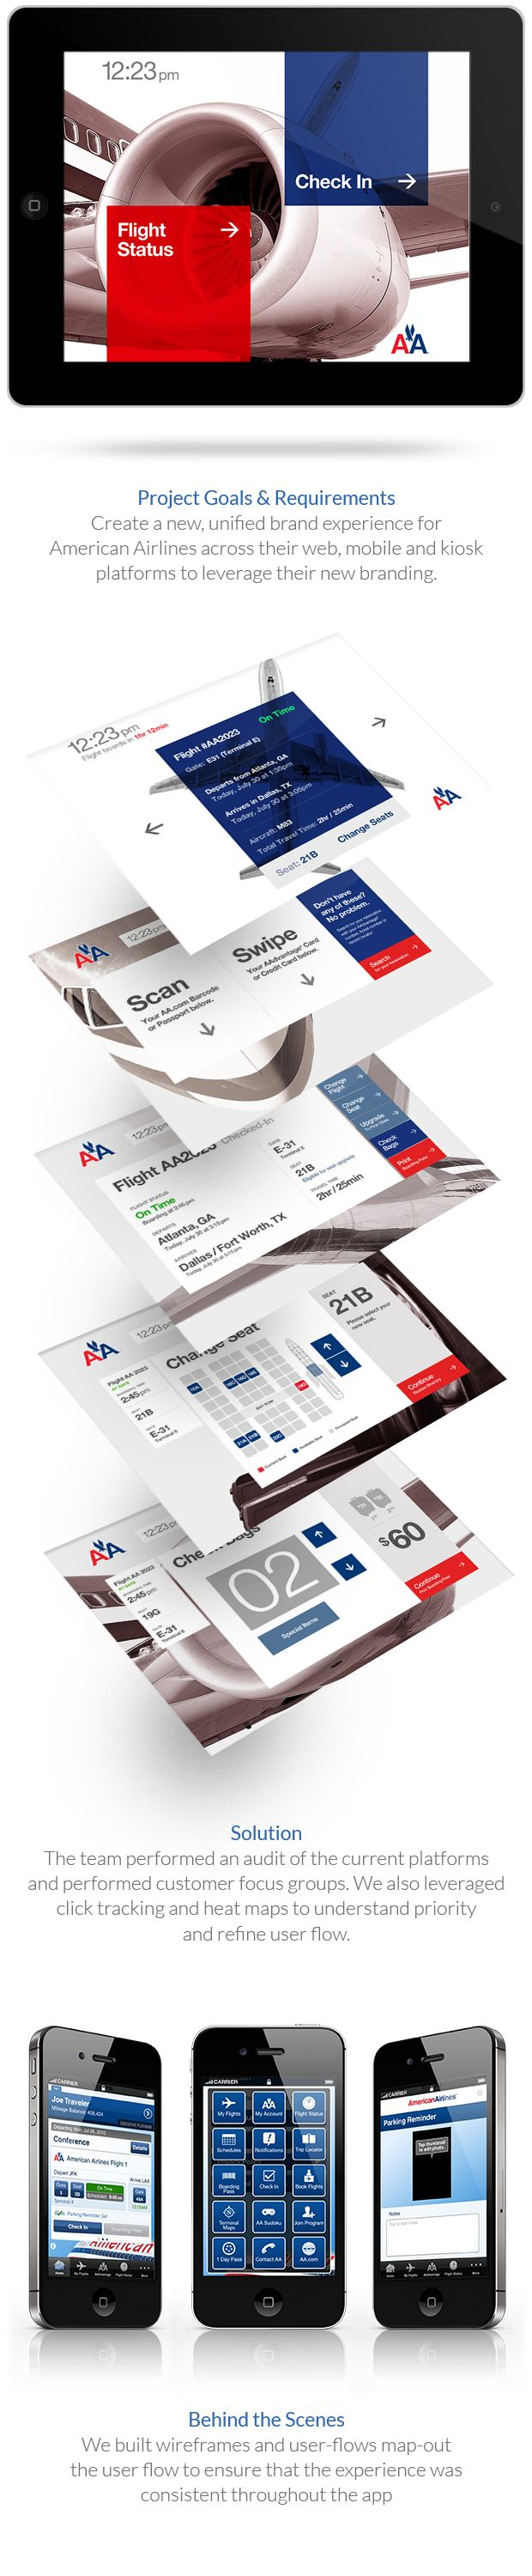 American Airlines Web & Mobile Kiosk on Behance